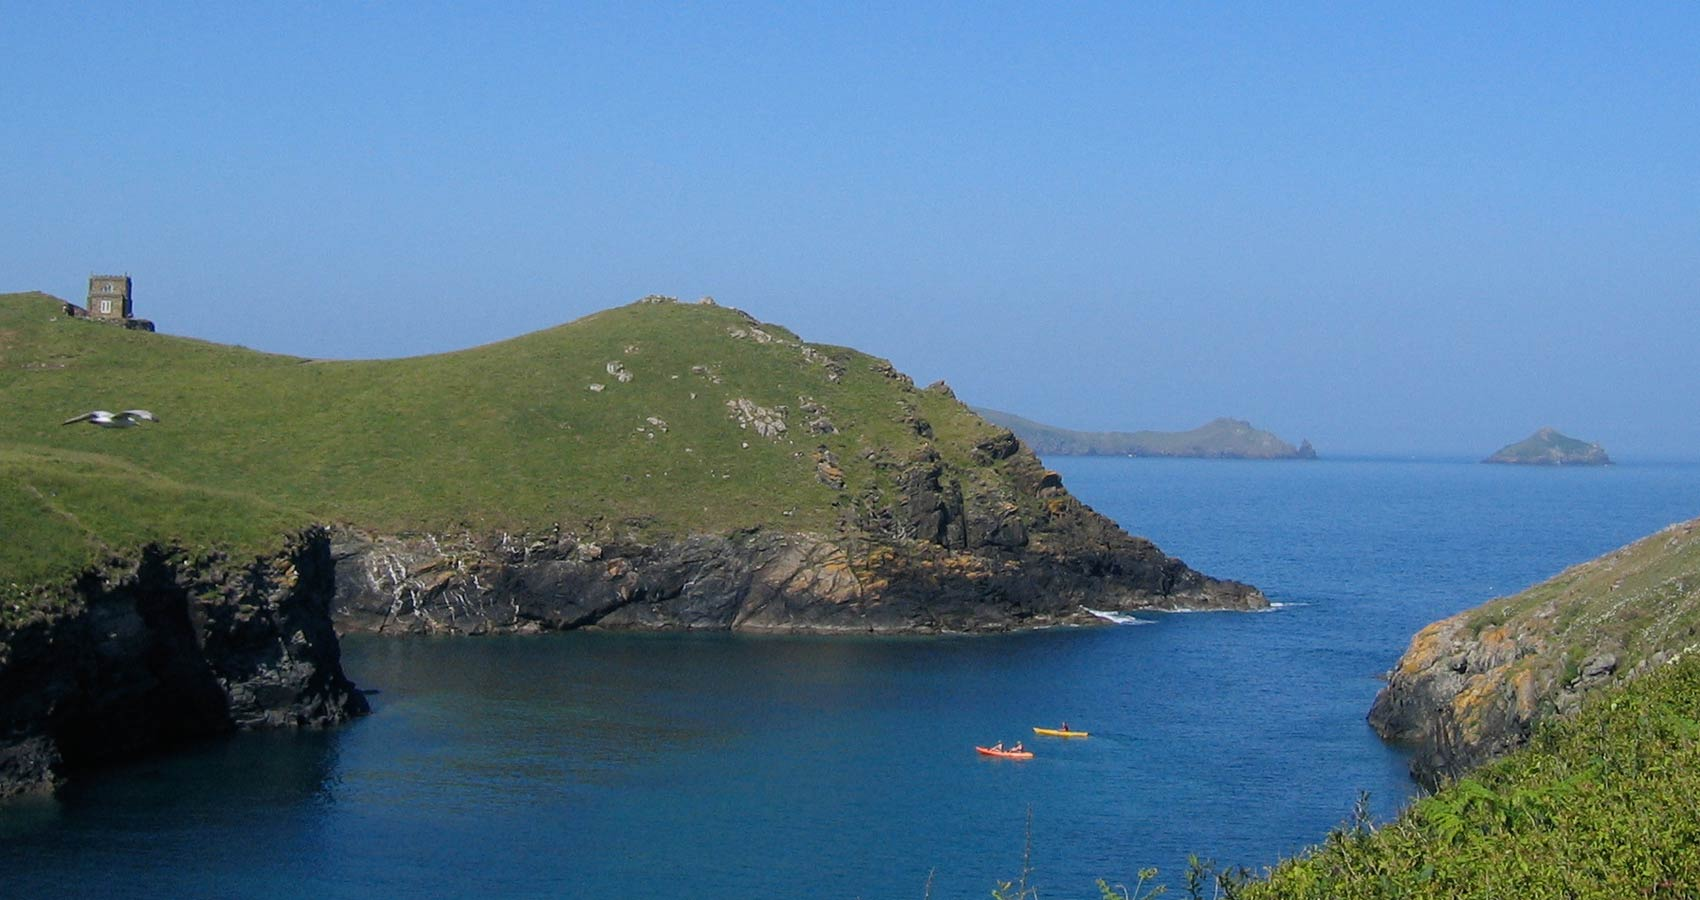 E.g. 'Kayak tours Cornwall' Port Quin